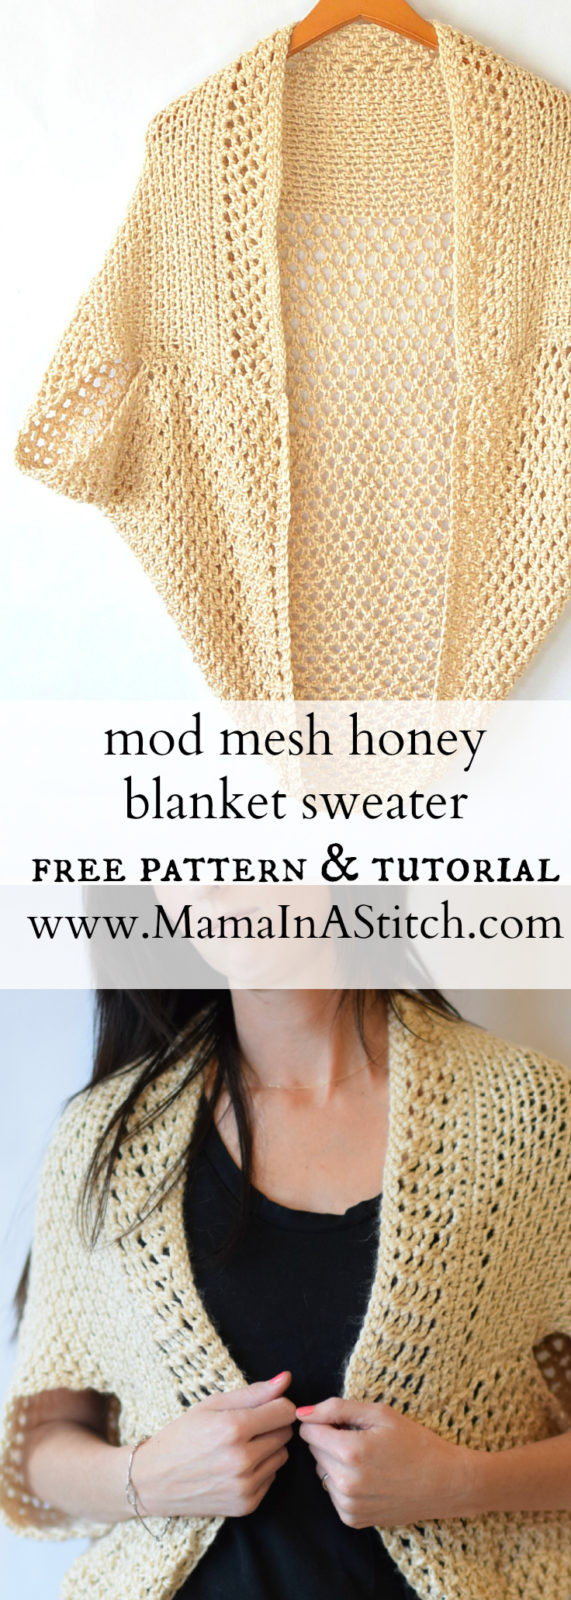 Luxury Mod Mesh Honey Blanket Sweater – Mama In A Stitch Sweaters Crochet Patterns Of Luxury 45 Images Sweaters Crochet Patterns